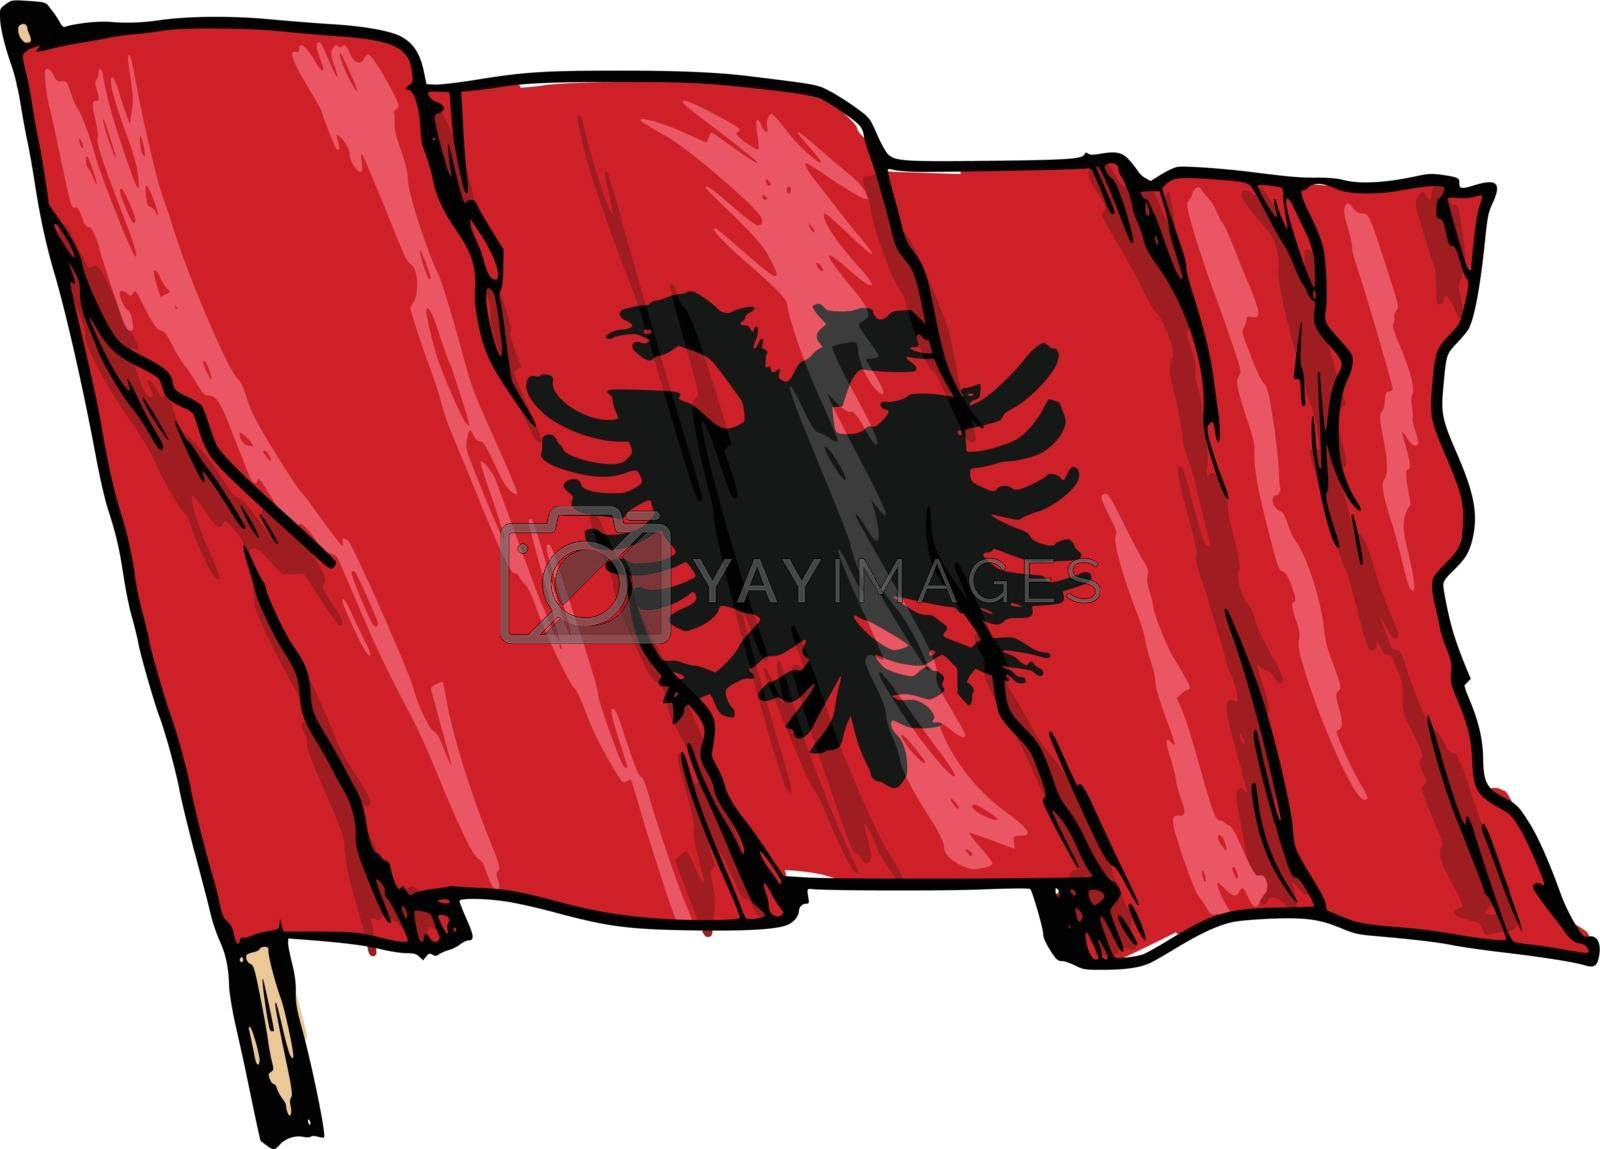 flag of Albania by Perysty